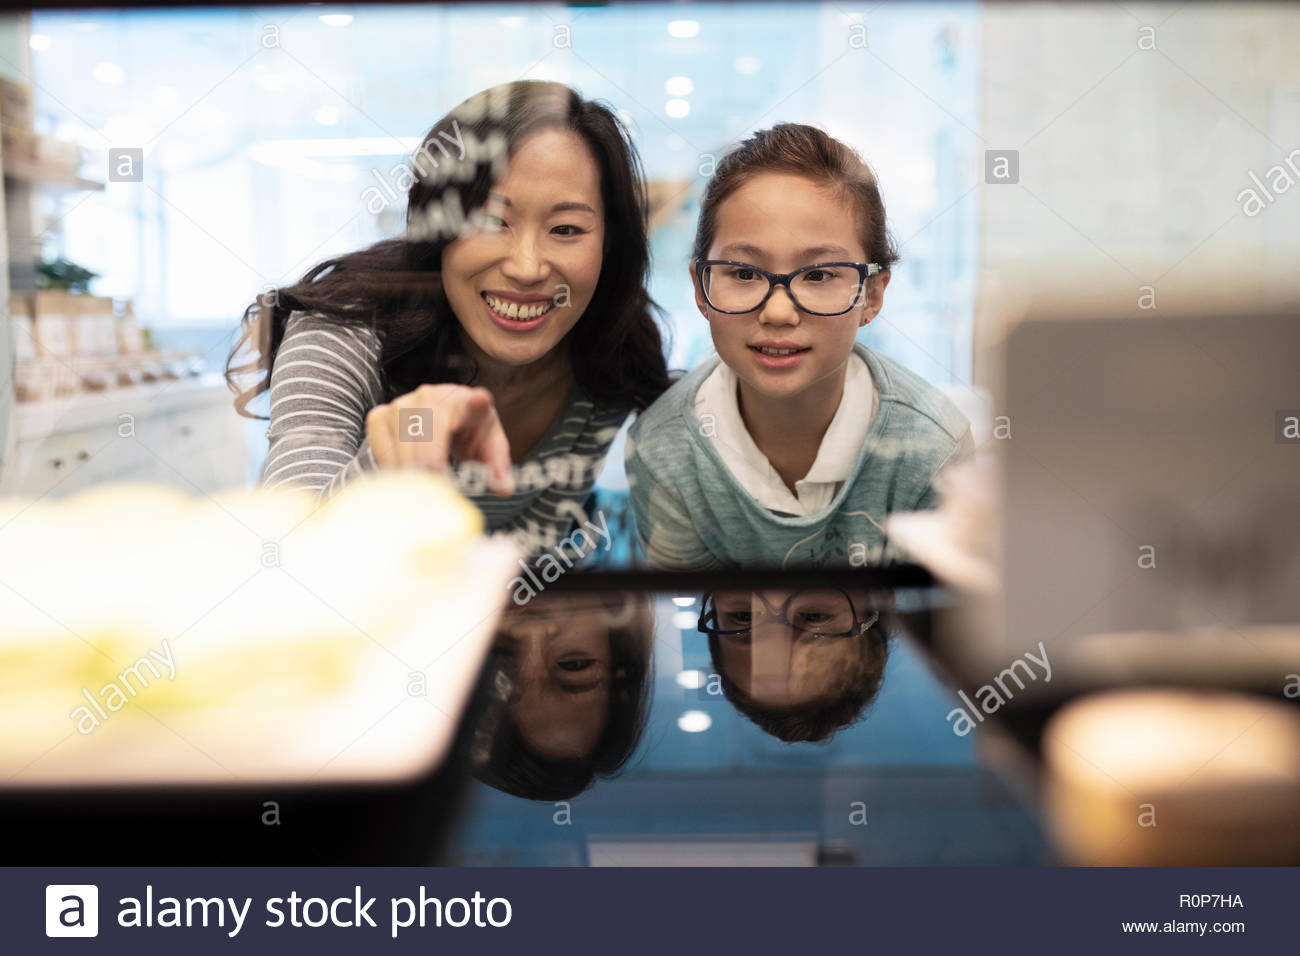 Mother and daughter eyeing cupcakes in bakery - Stock Image